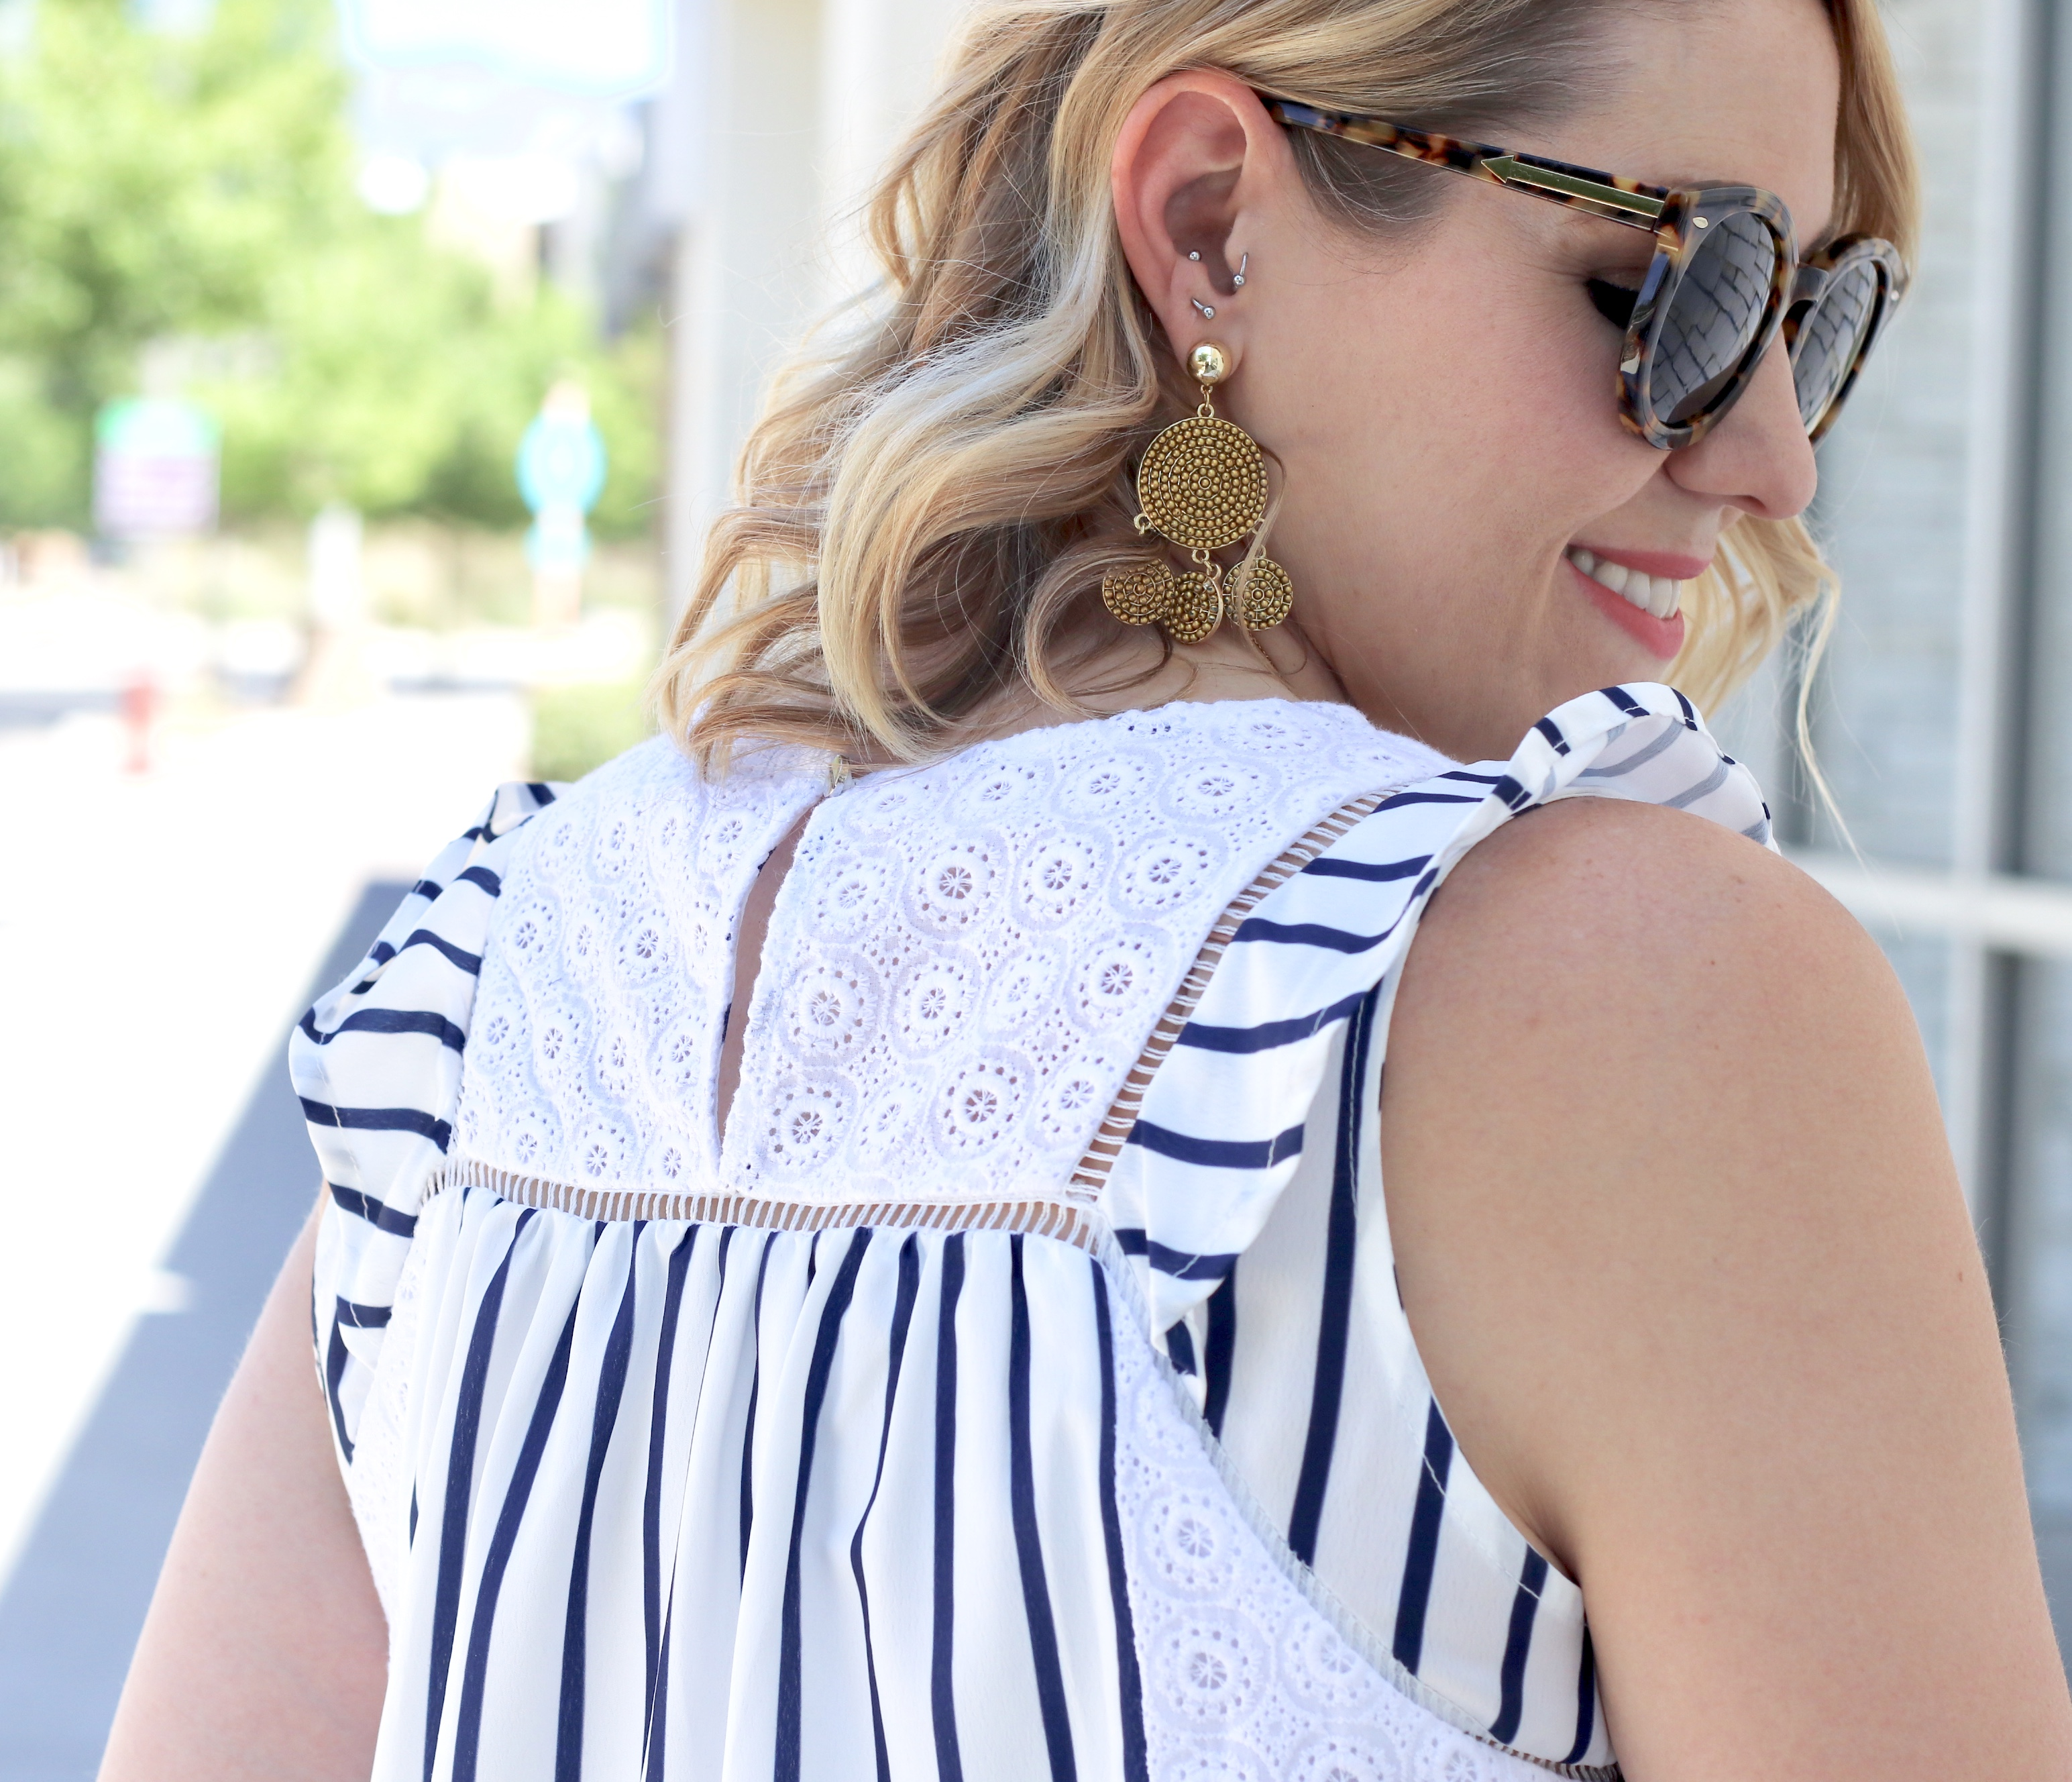 eyelet striped blouse sugarfix earrings #baublebar #sugarfix #statementearrings #eyelet